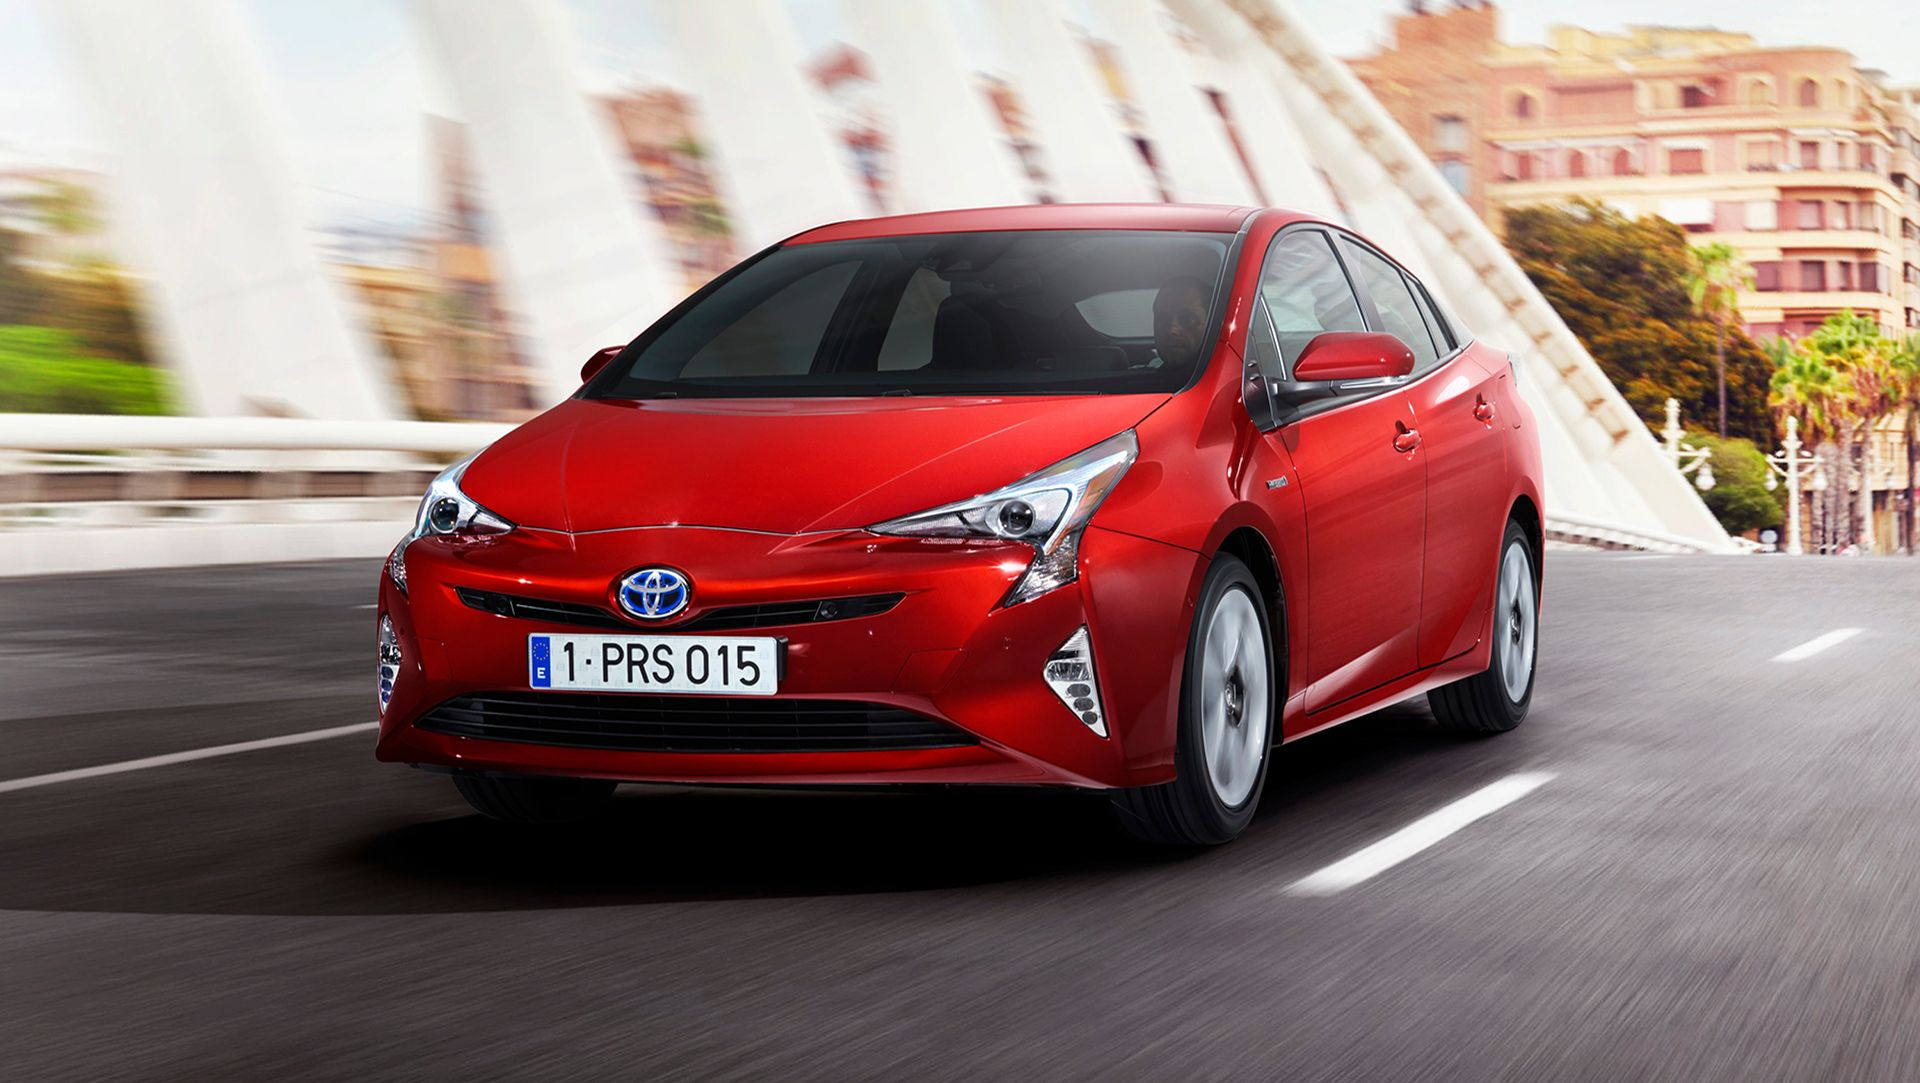 Toyota Has Advanced The Pioneering Status Of Its Iconic Prius